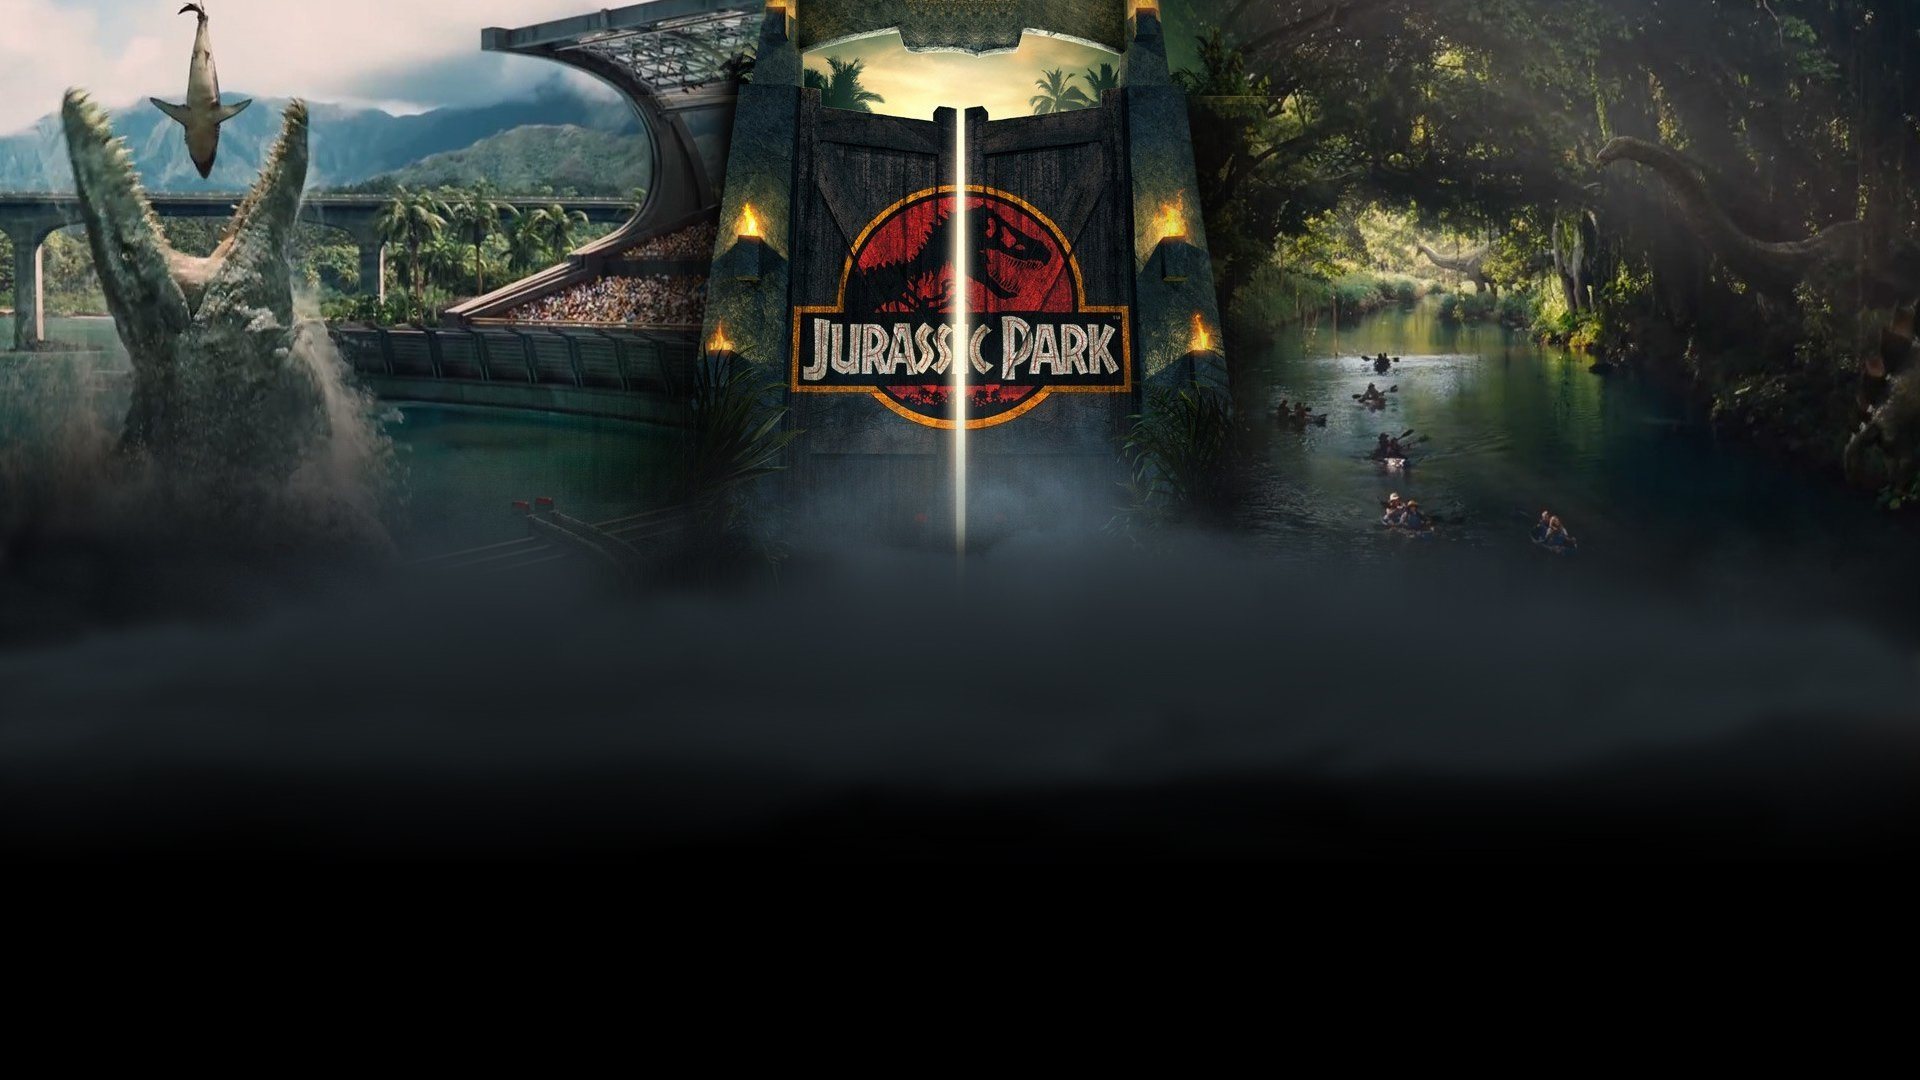 124 Jurassic Park HD Wallpapers | Backgrounds - Wallpaper Abyss